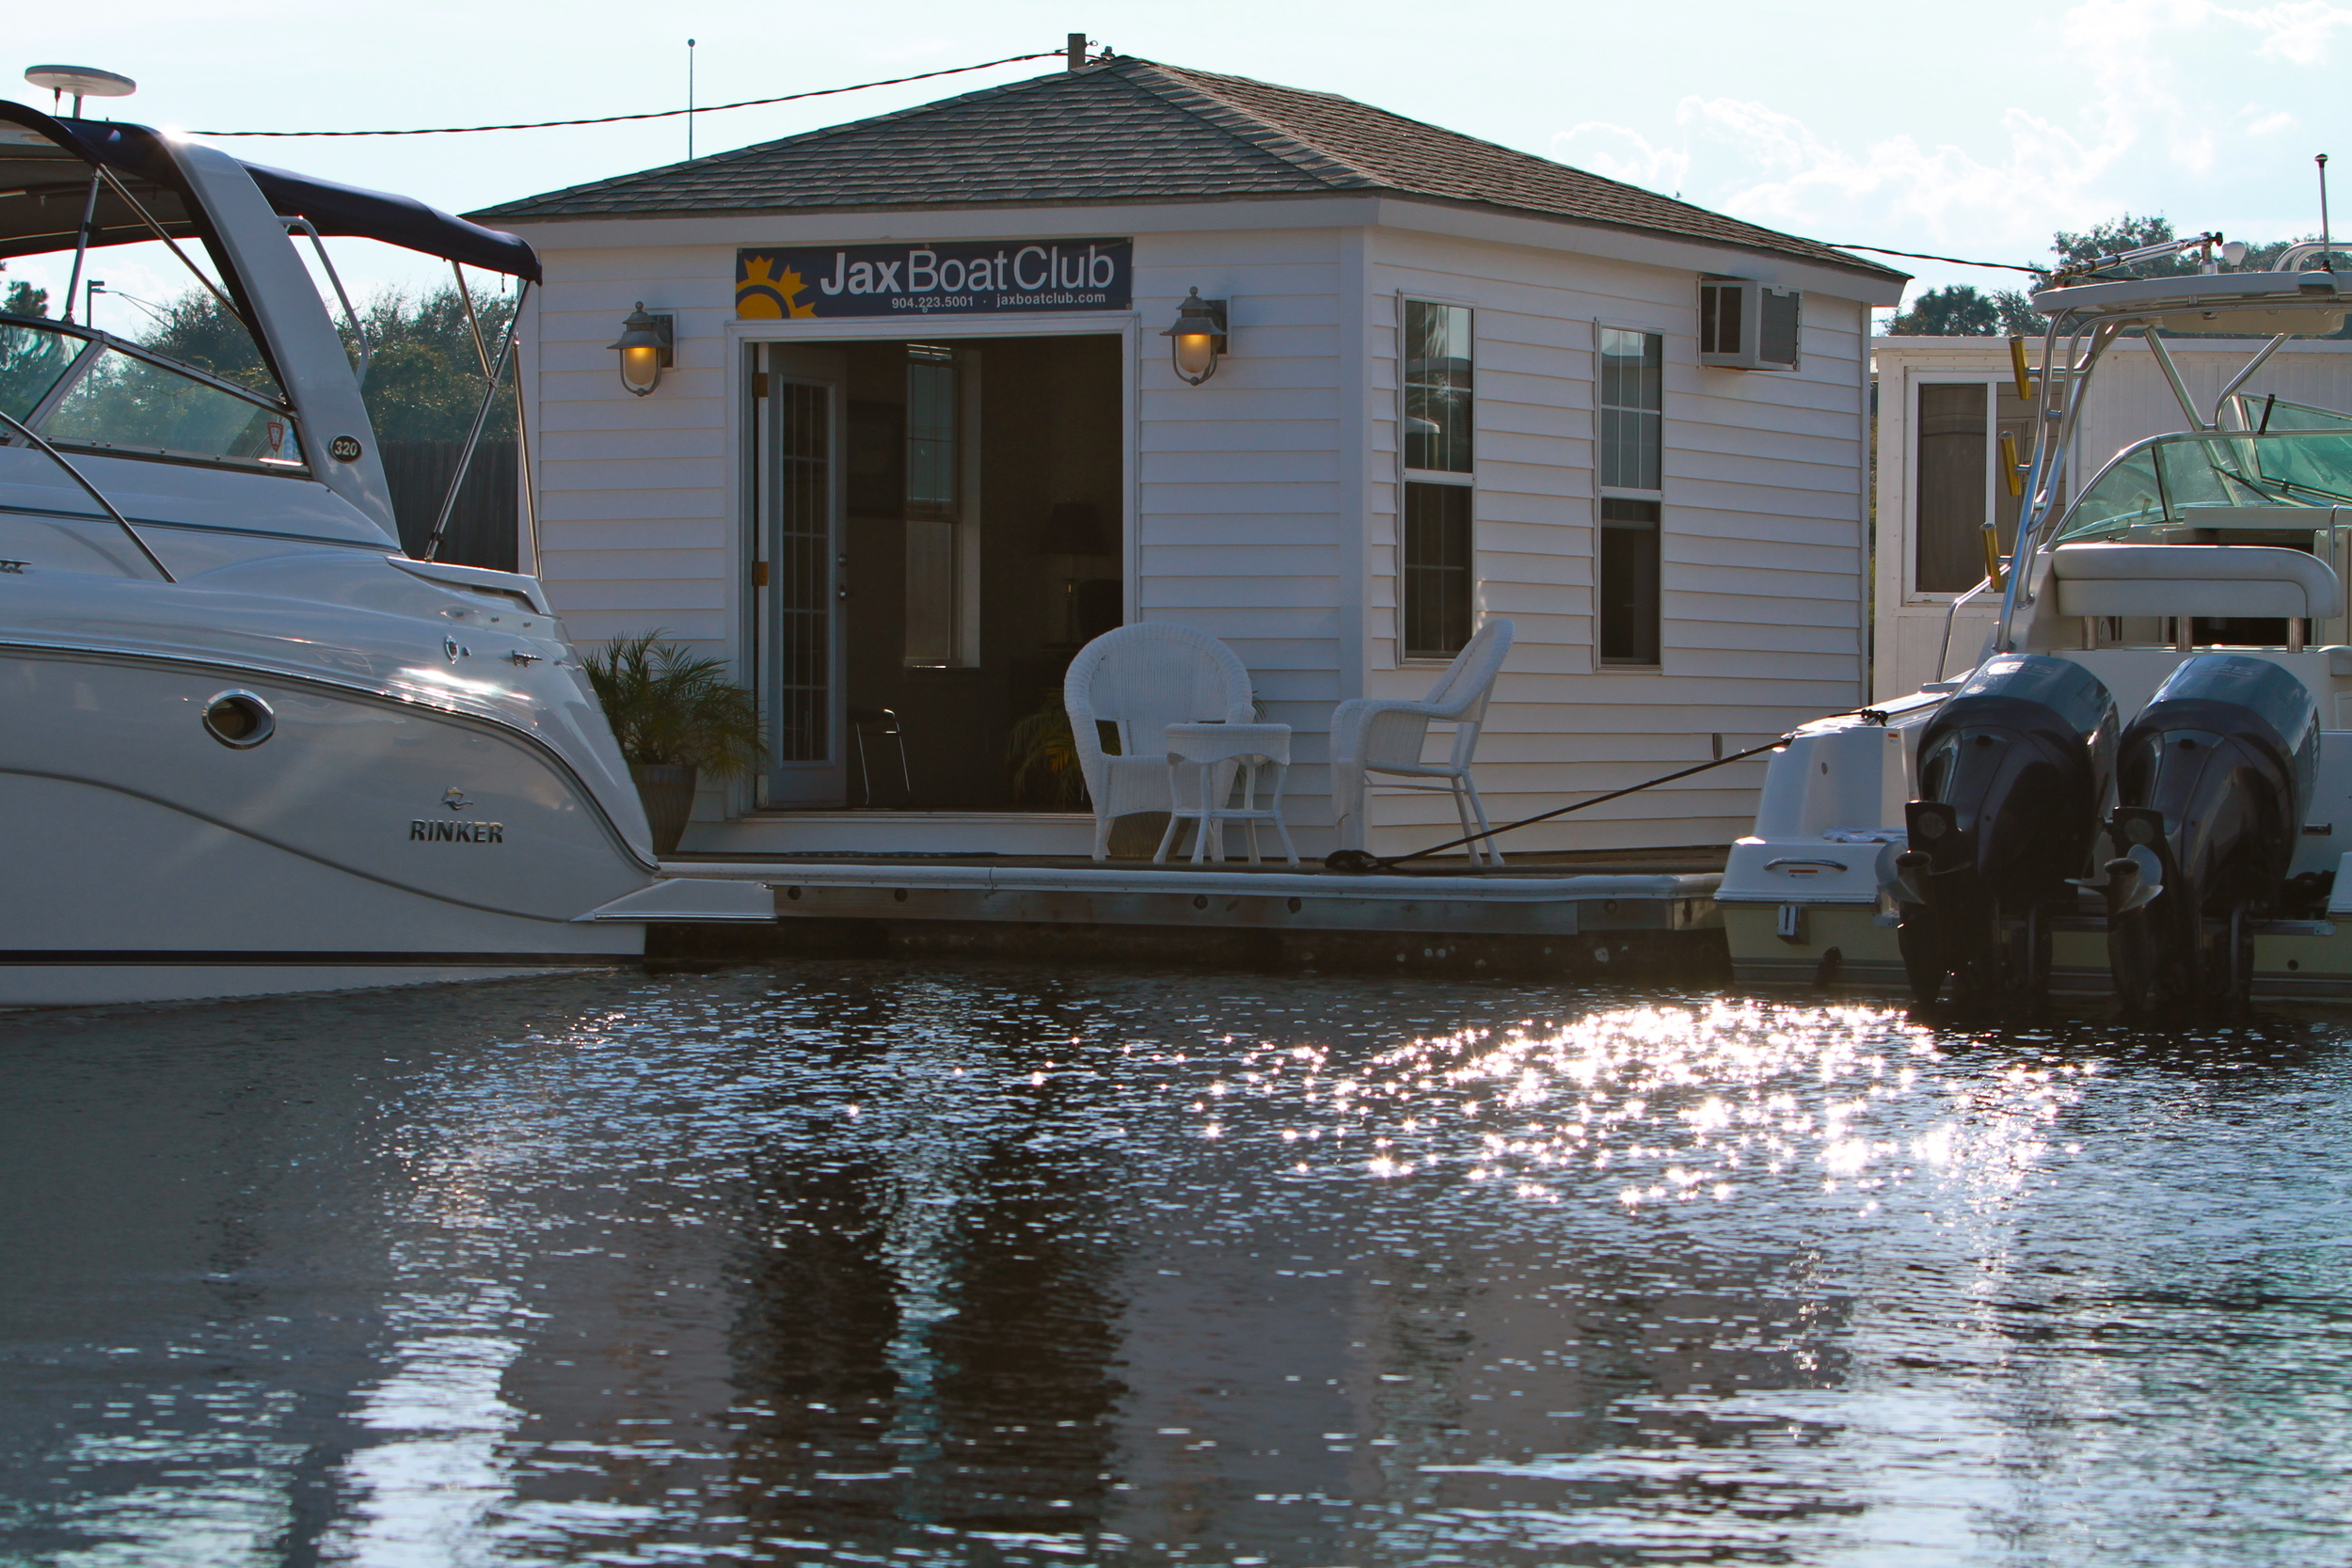 Jax Boat Club office